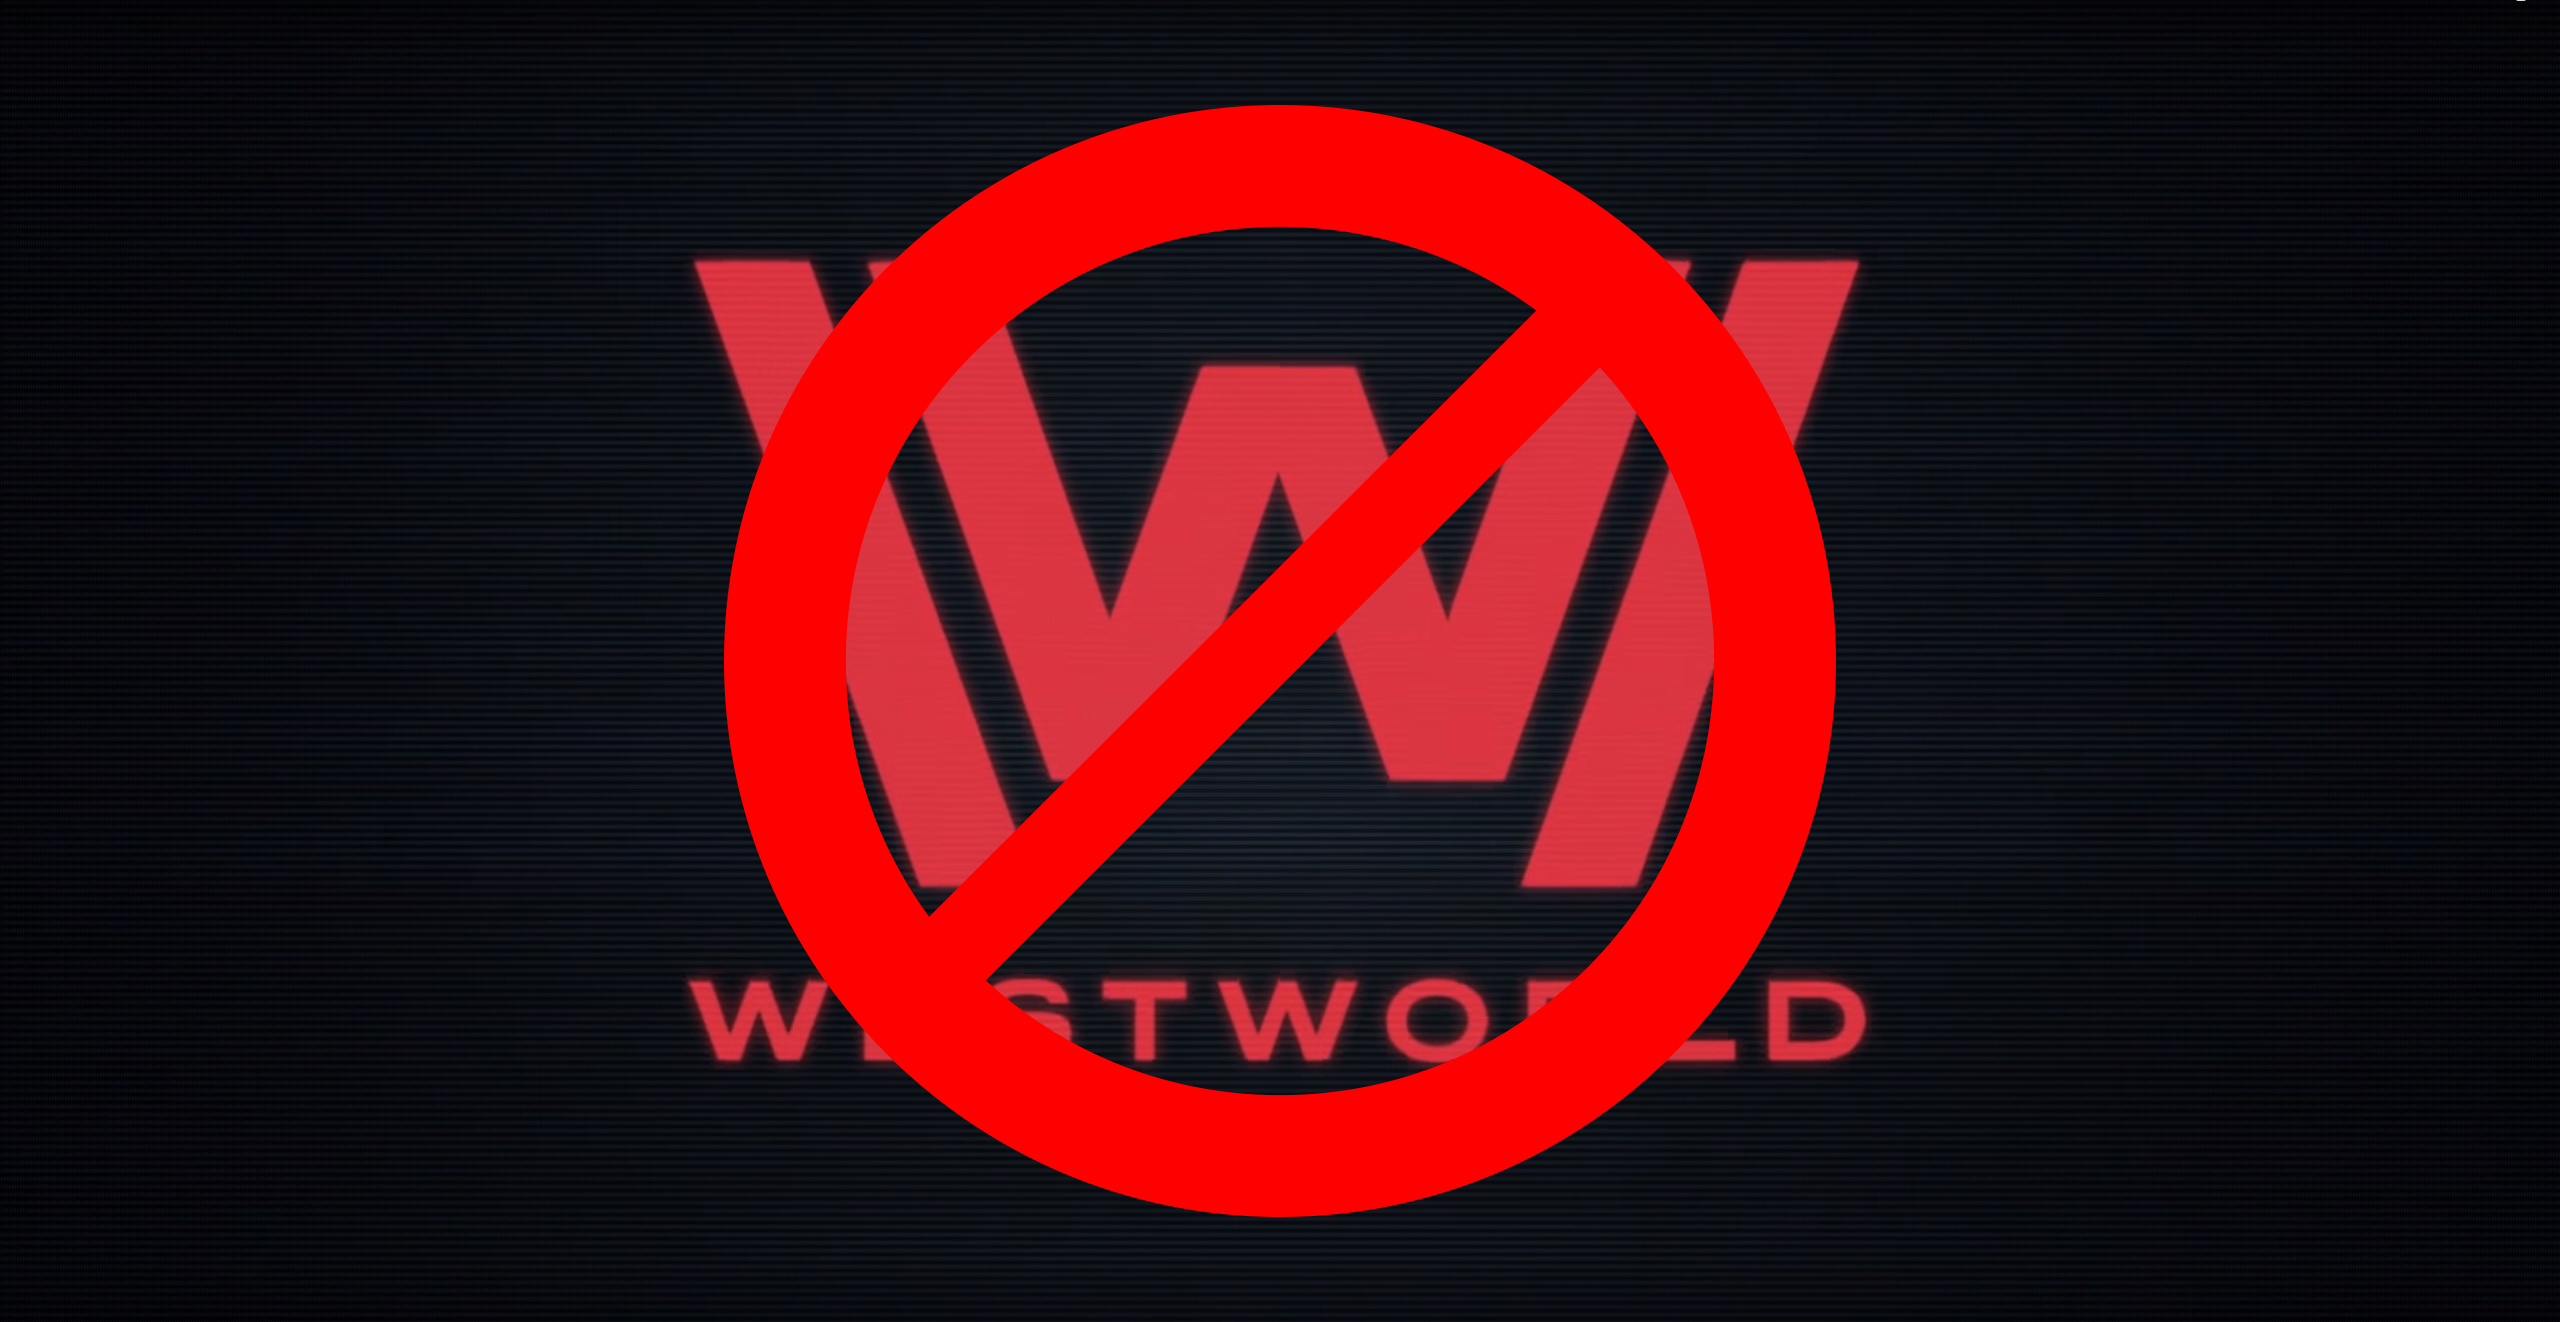 After Lawsuit From Bethesda, The Westworld Mobile Game Is Shutting Down